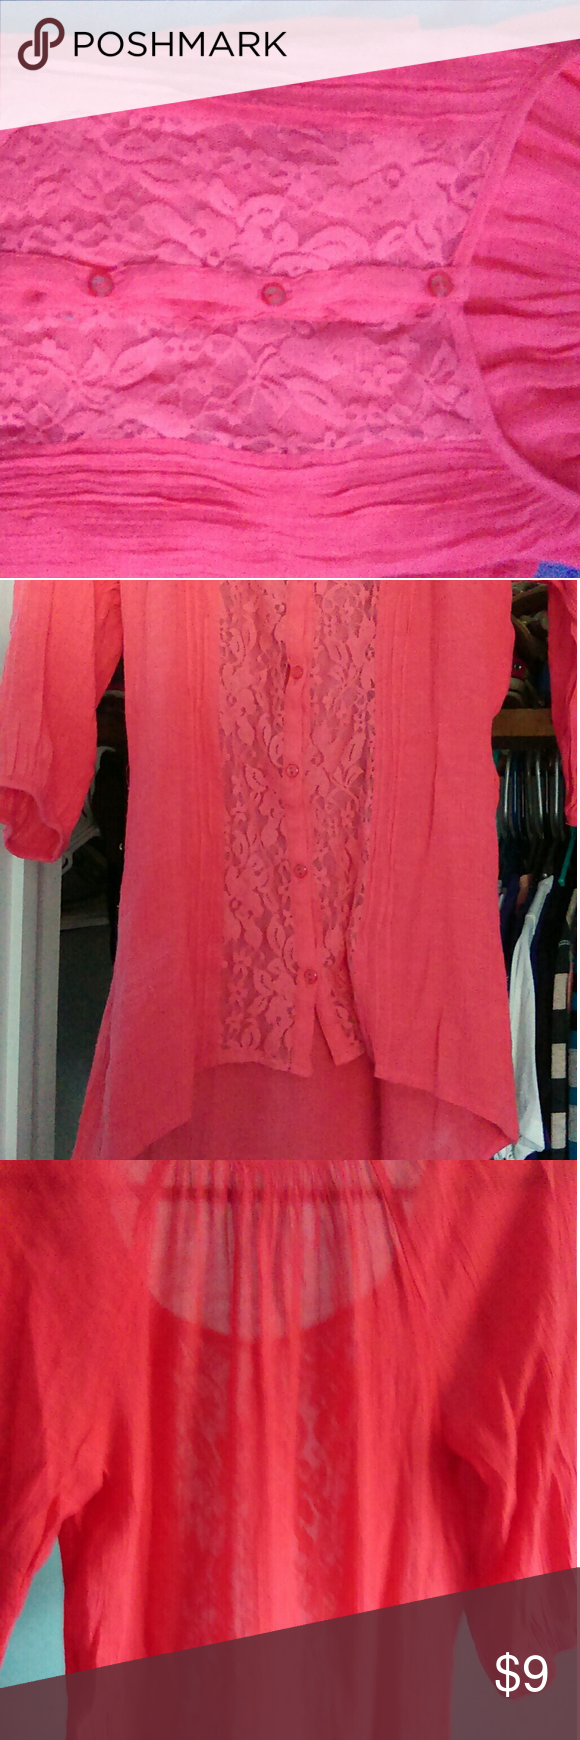 Pink see through lace dress  Lacy see through top  Coral color Top cd and Coral